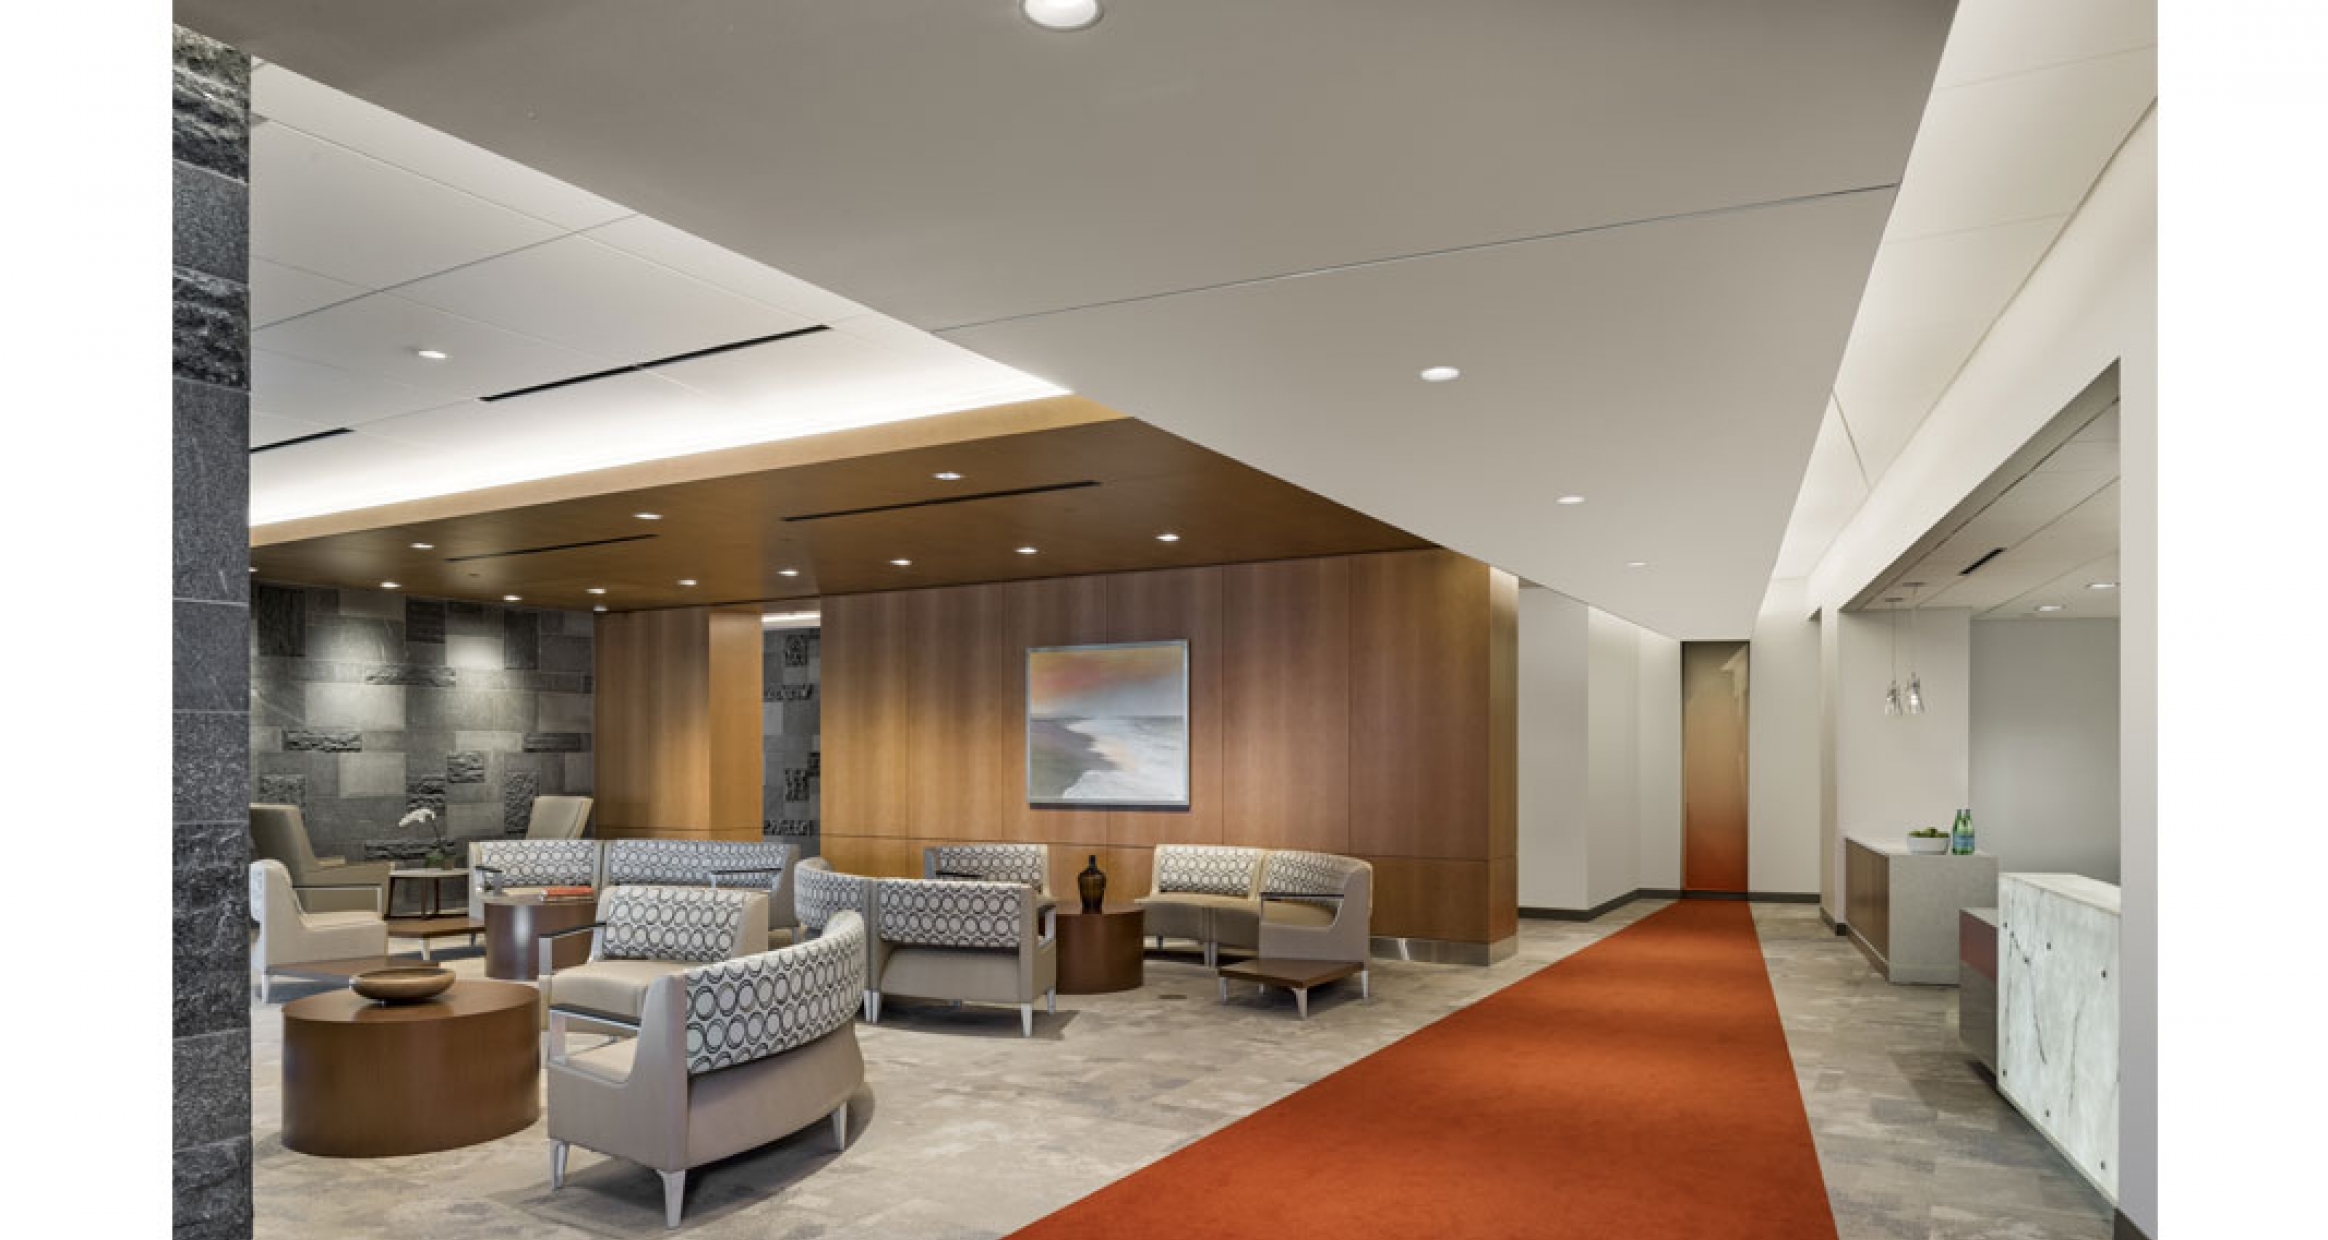 The surgery department's family waiting room features seating configurations using the emblem and form created during the design of the hospital. The waiting room also includes a nourishment bar.